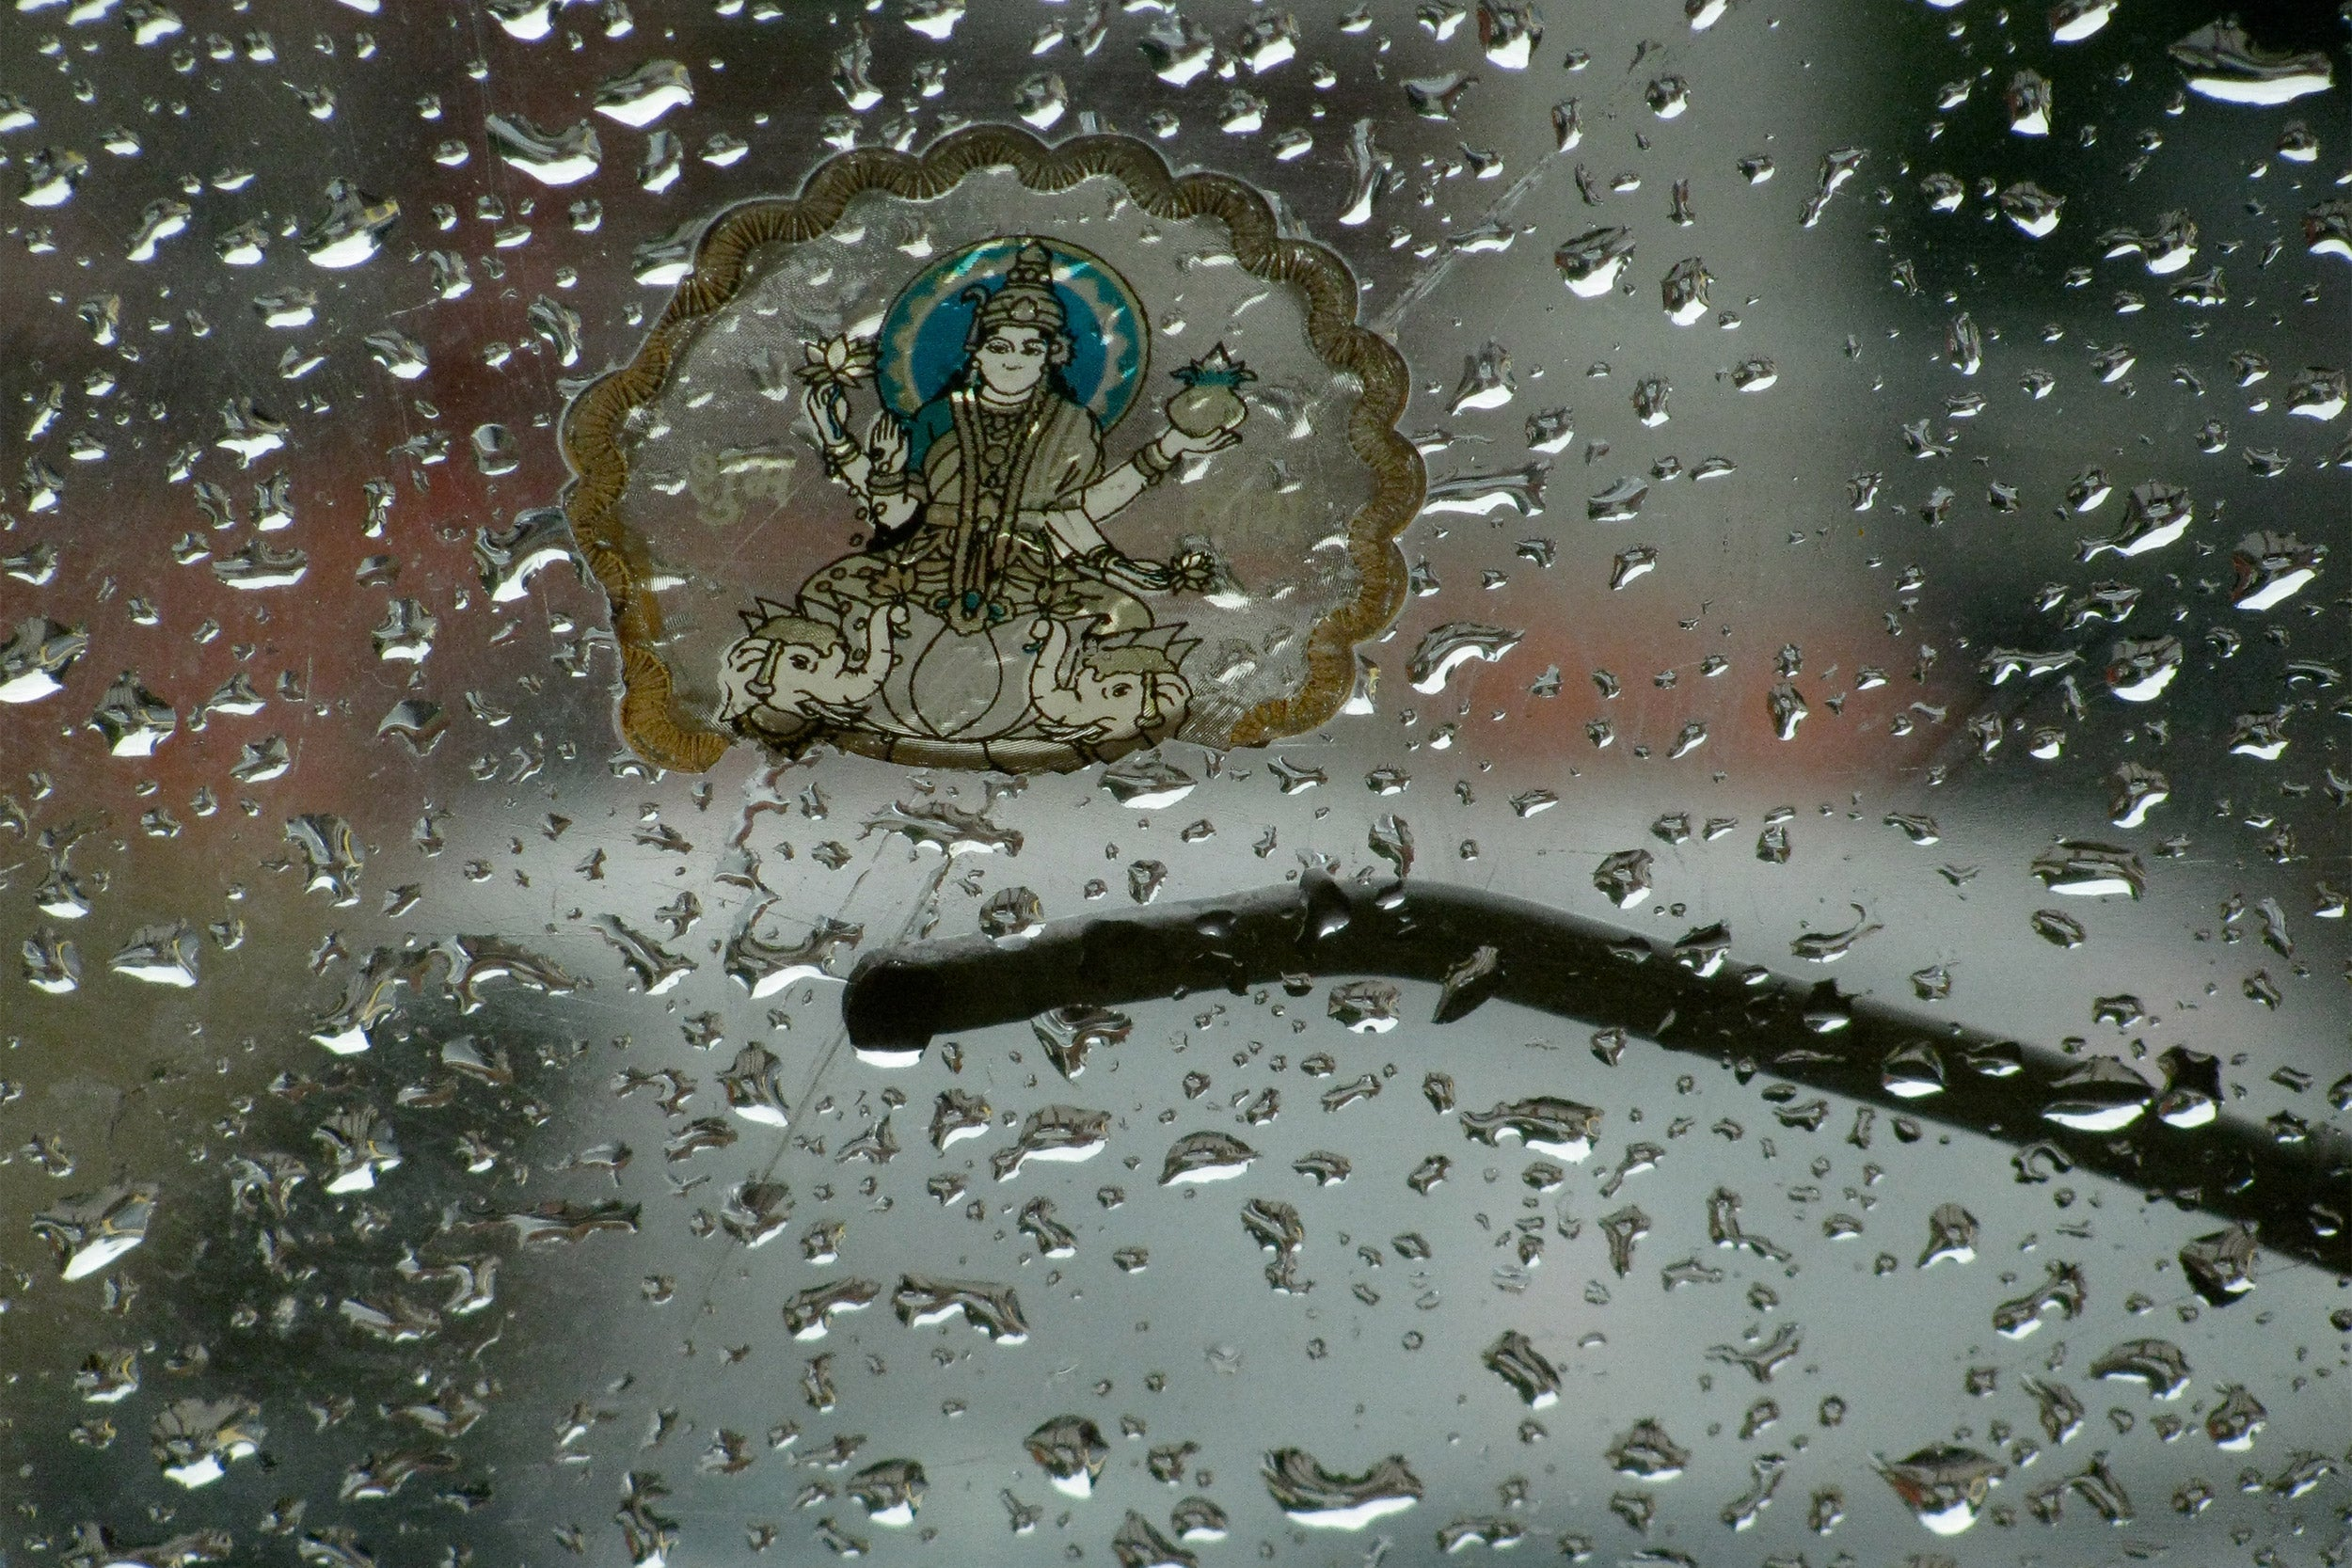 Images of raindrops on a windshield in India